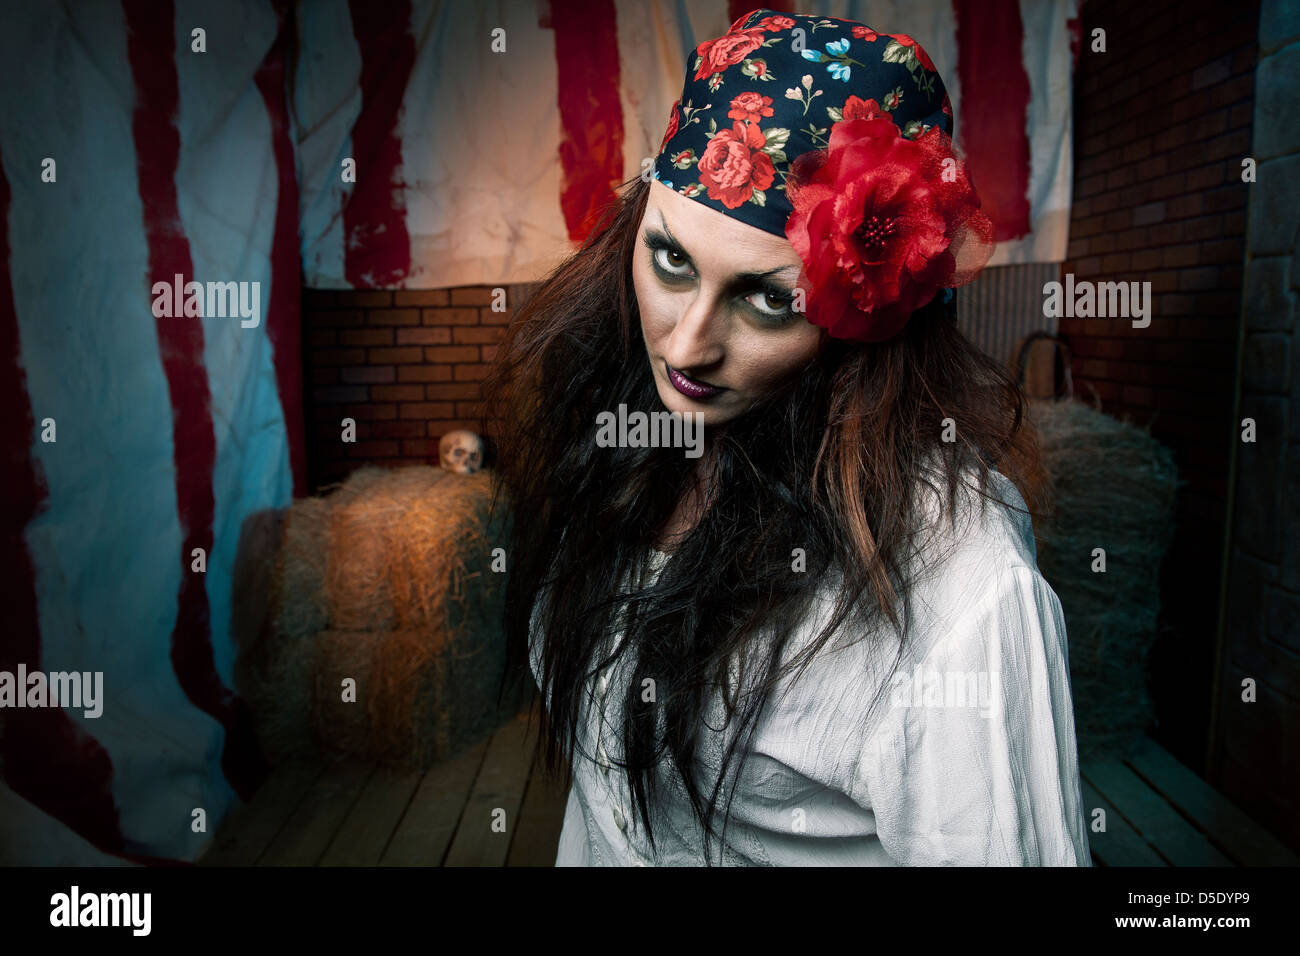 Dark gypsy woman front of dark tented alley - Stock Image